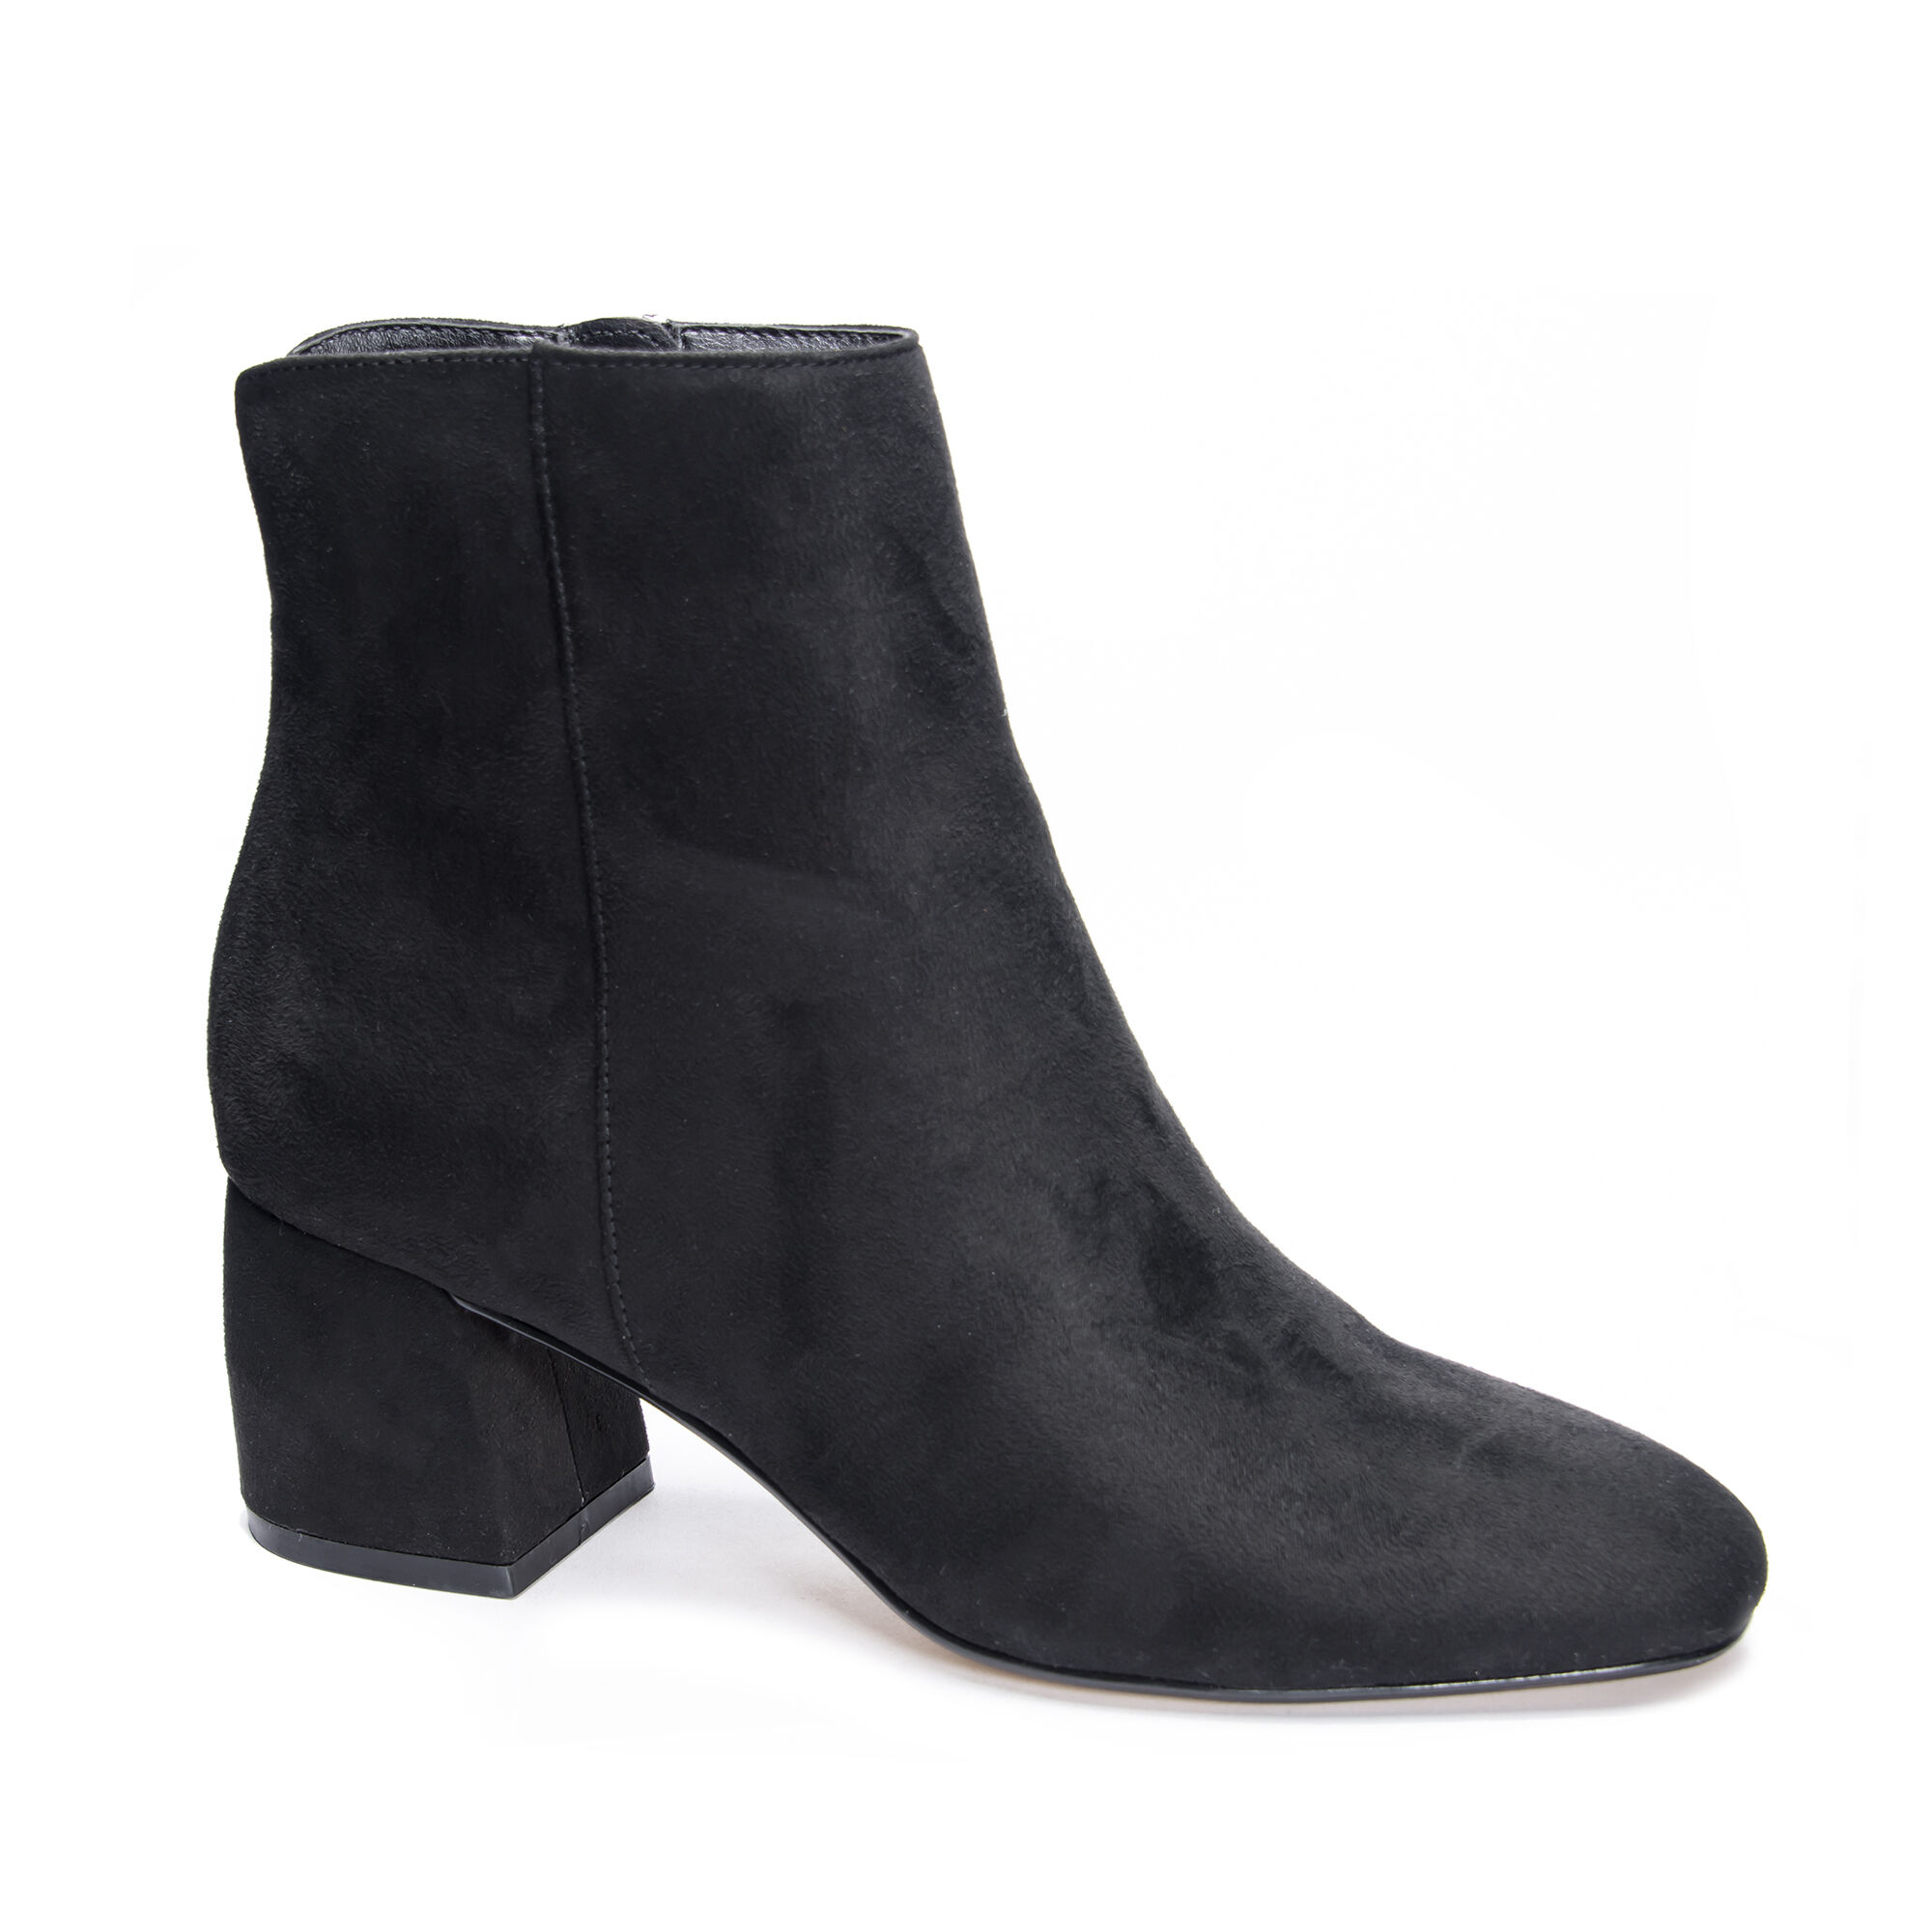 A Wear with Anything Bootie